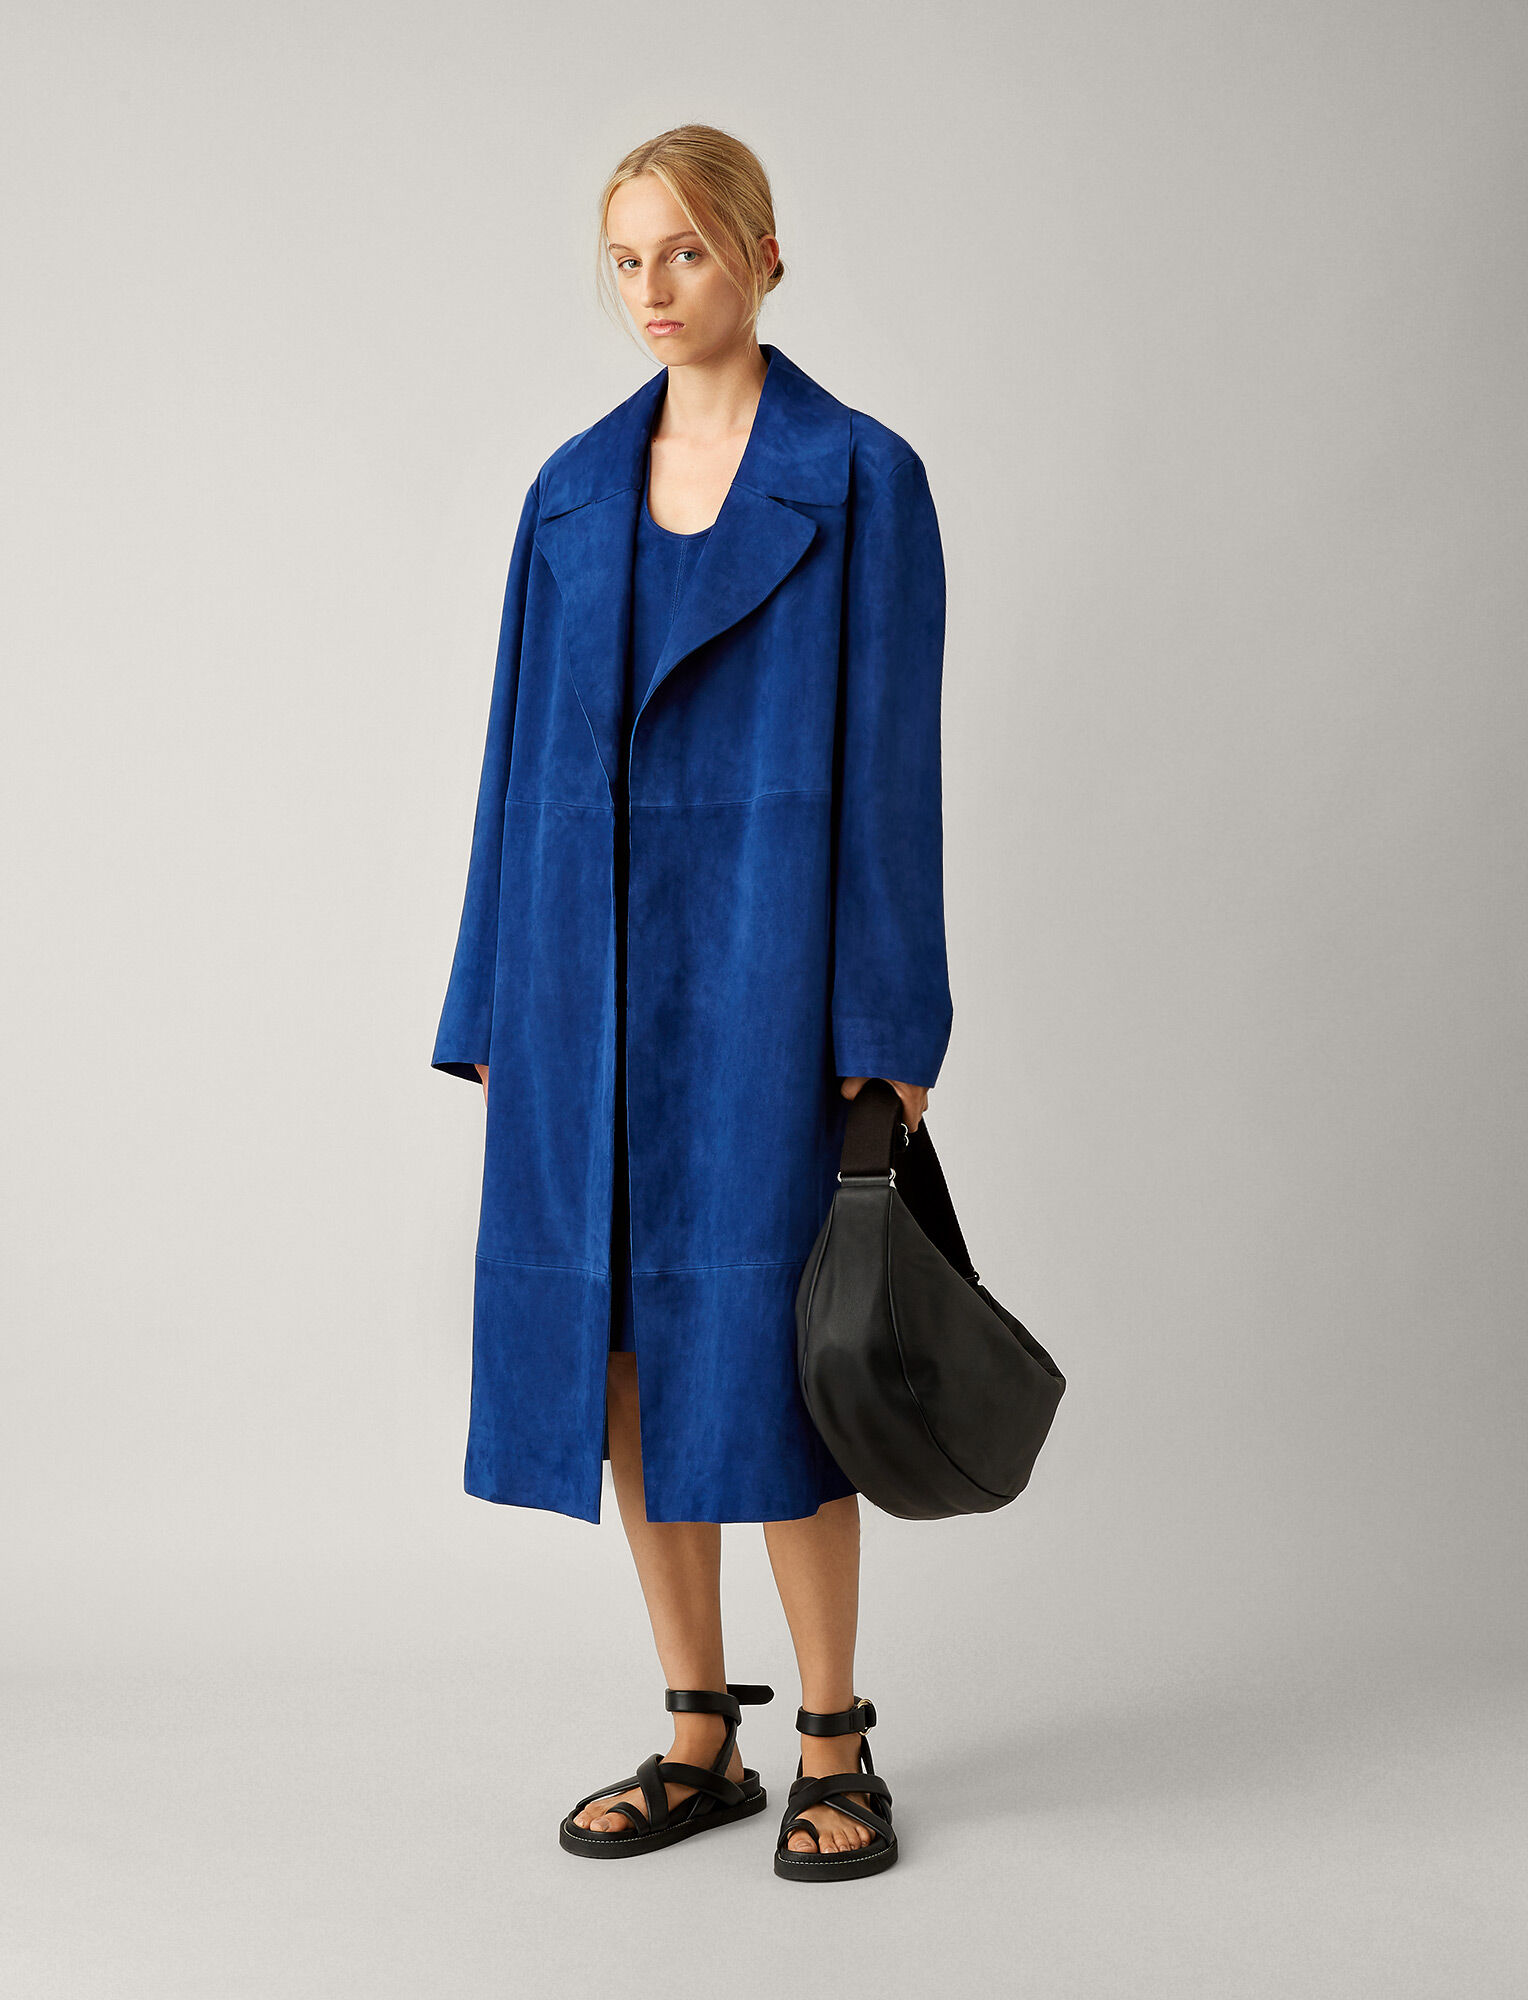 Joseph, June Suede Coat, in KLEIN